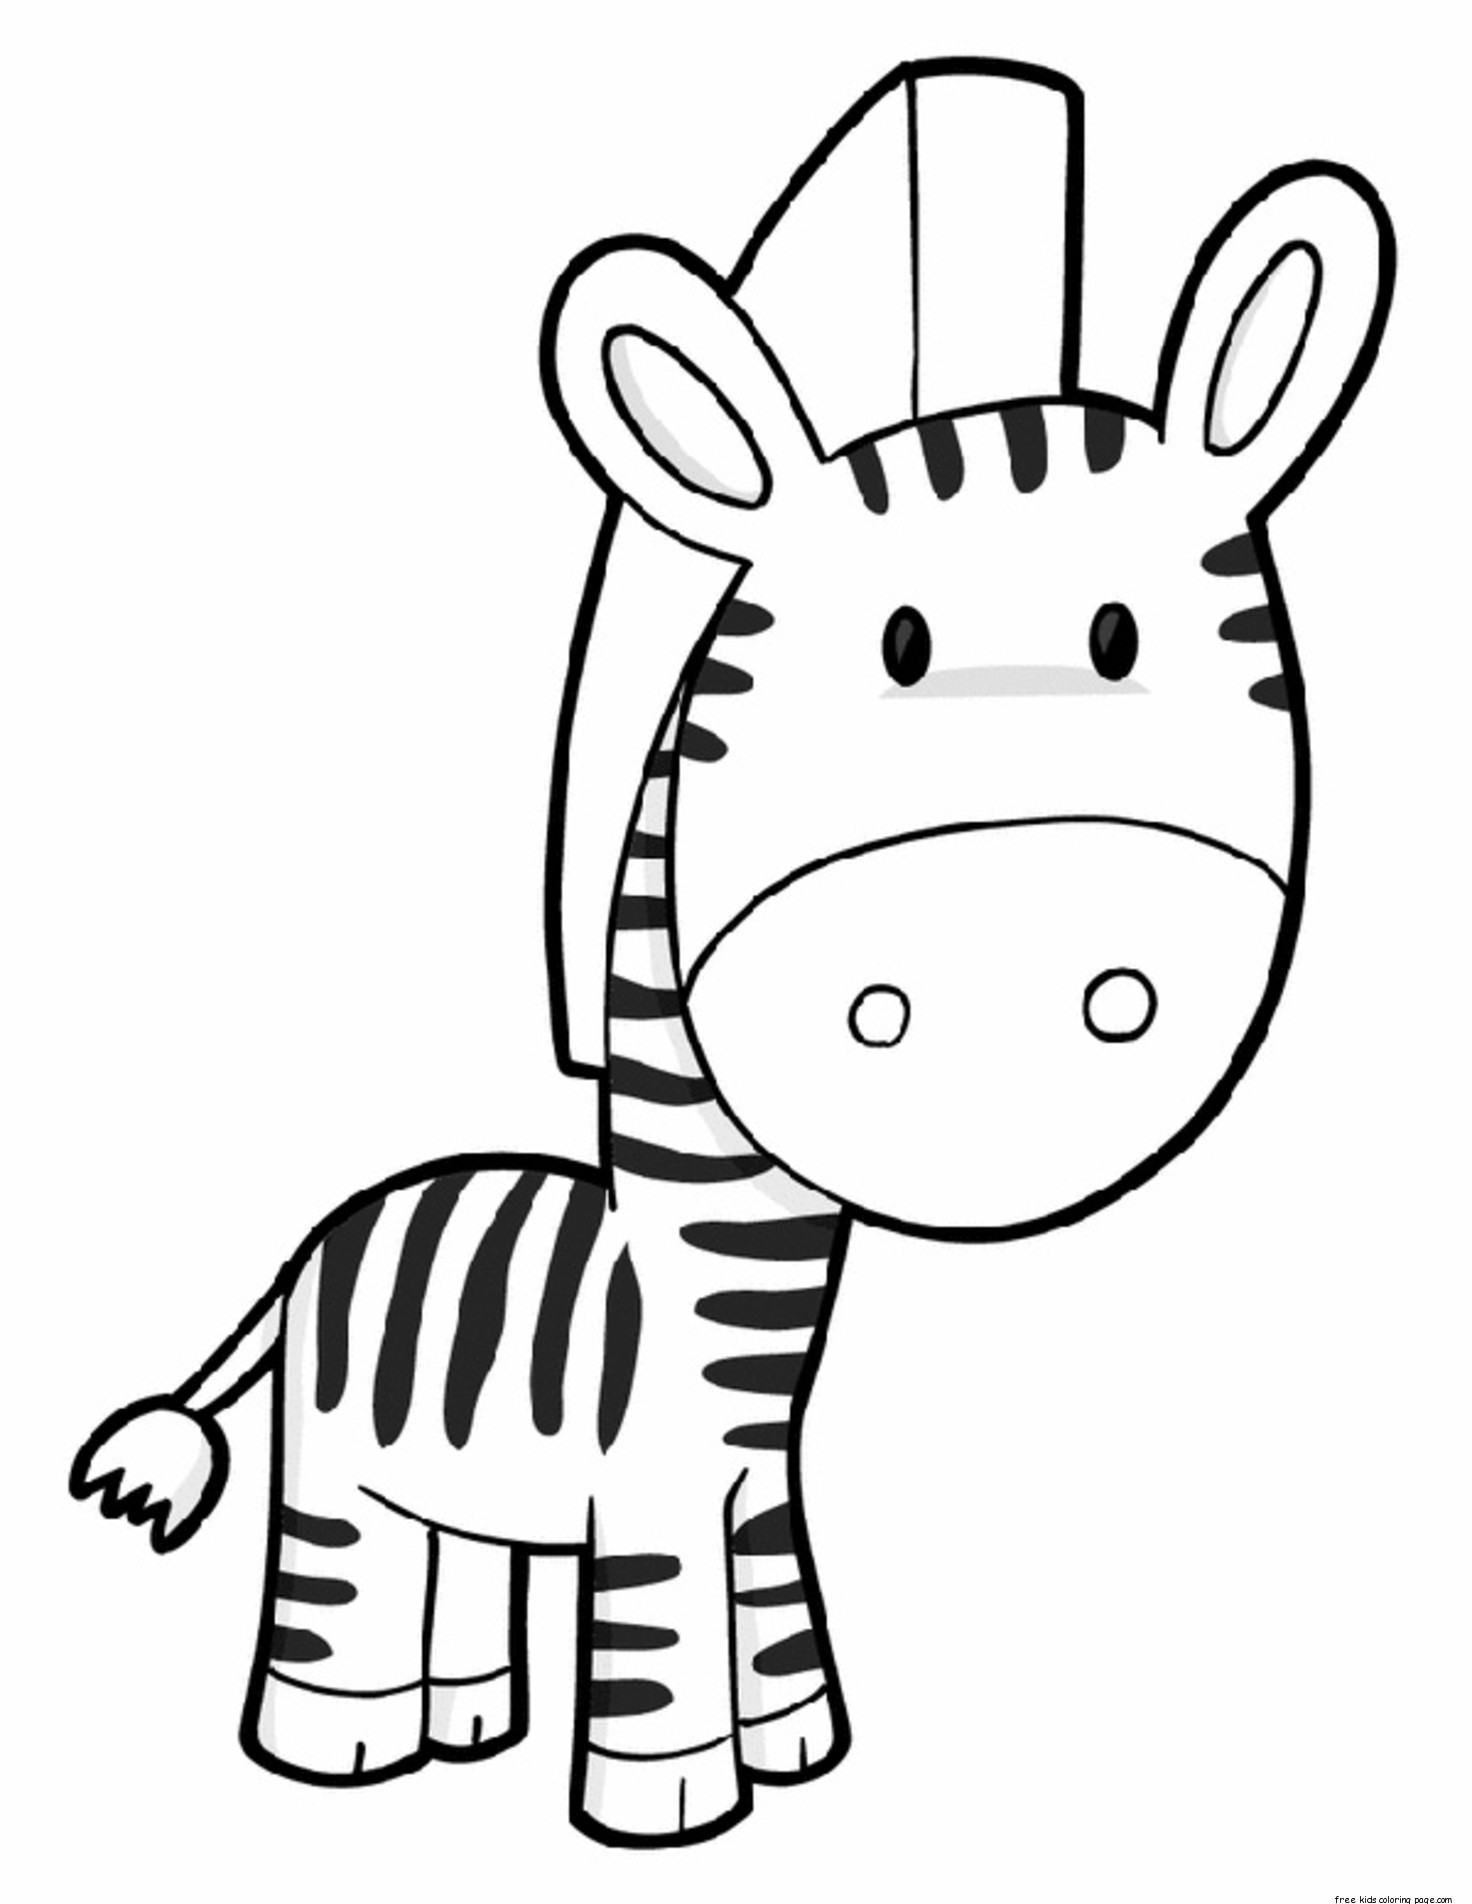 Printable Zebra Preschool Coloring Page For Kidsfree Printable Coloring Pages For Kids